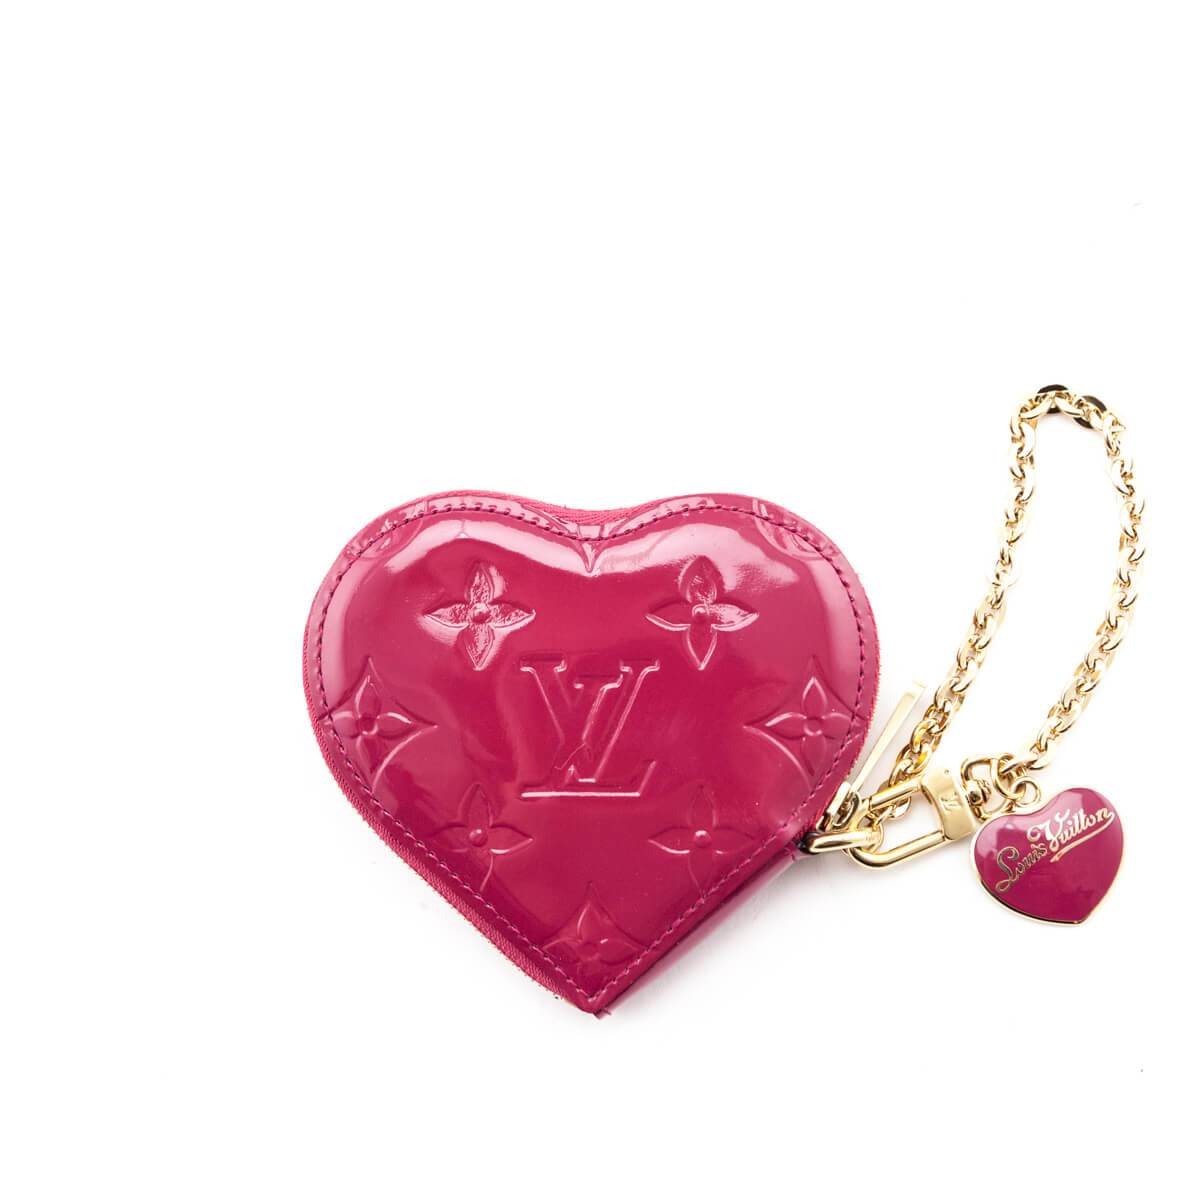 How To Dress Up Your Bag: The Best Designer Bag Accessories Louis Vuitton Heart Coin Purse